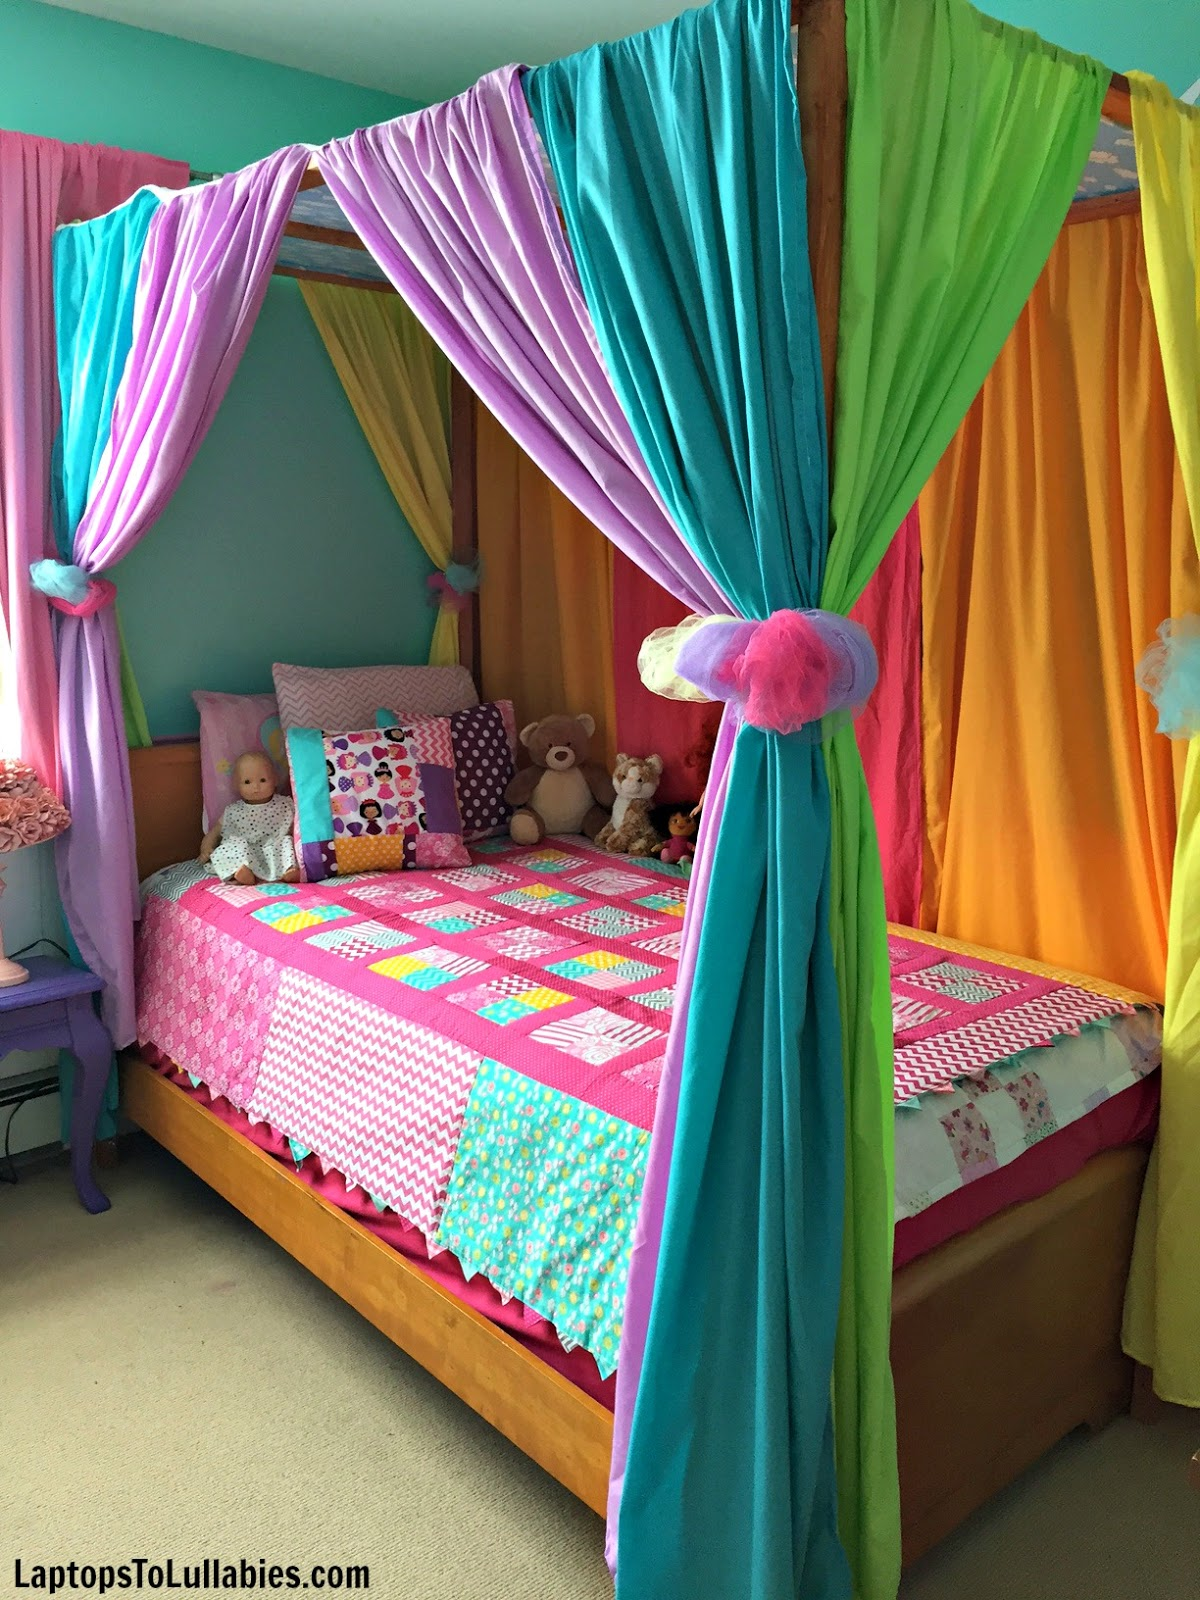 Laptops To Lullabies Diy Canopy Bed With Rainbow Curtains